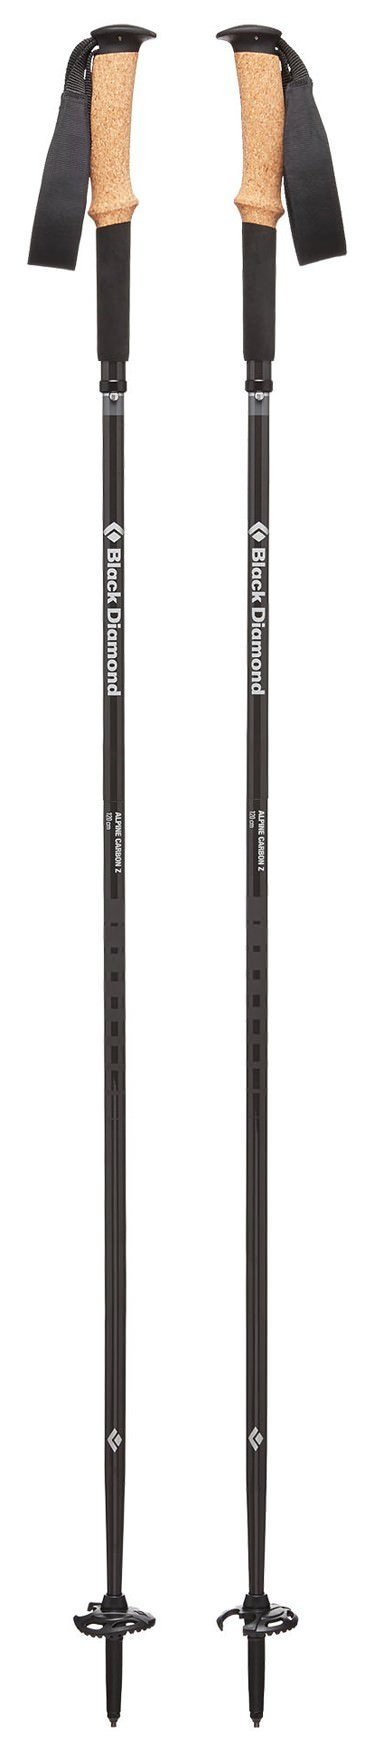 Black Diamond Alpine Carbon Z Trekking Poles - 1 Shot Gear